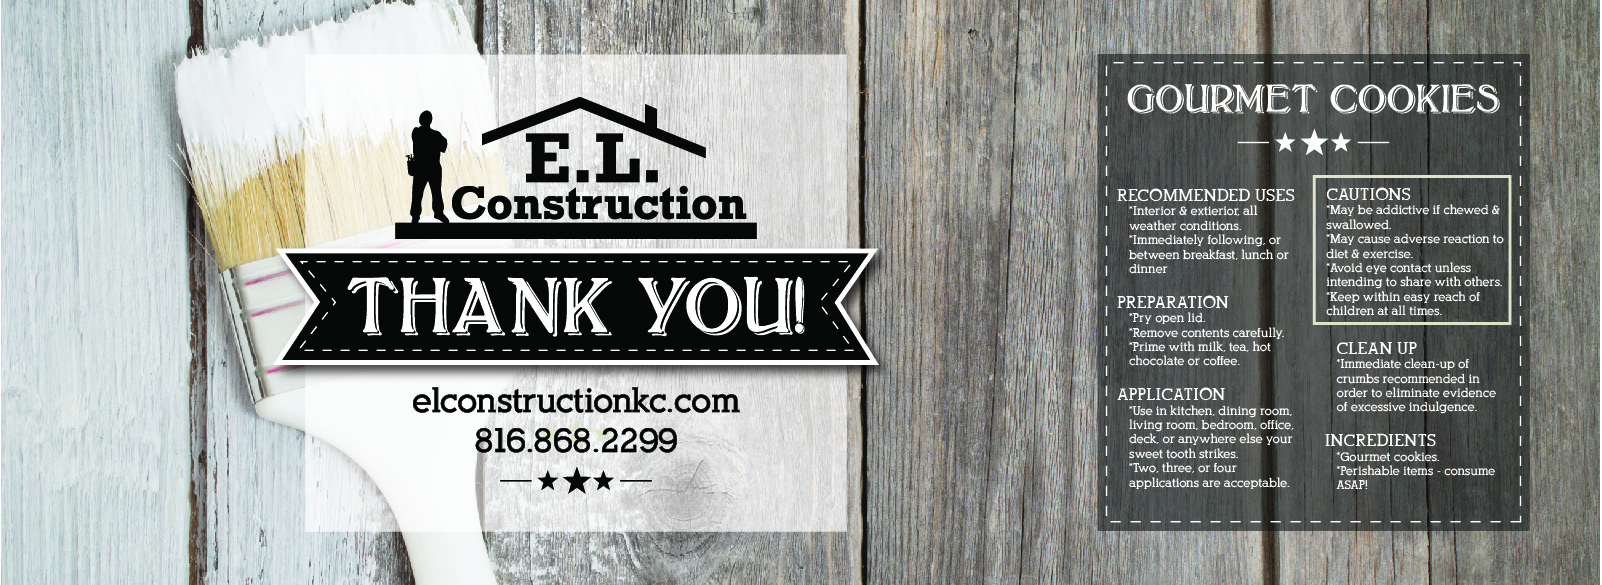 E.L. Construction wanted to leave their customers with a small treat as a thank you for doing business with them: a paint can full of gourmet cookies. We helped them design a fun label that will leave their customers with a lasting impression of their quality work, and a smile.  Tools: Adobe Illustrator, Adobe Stock Photos